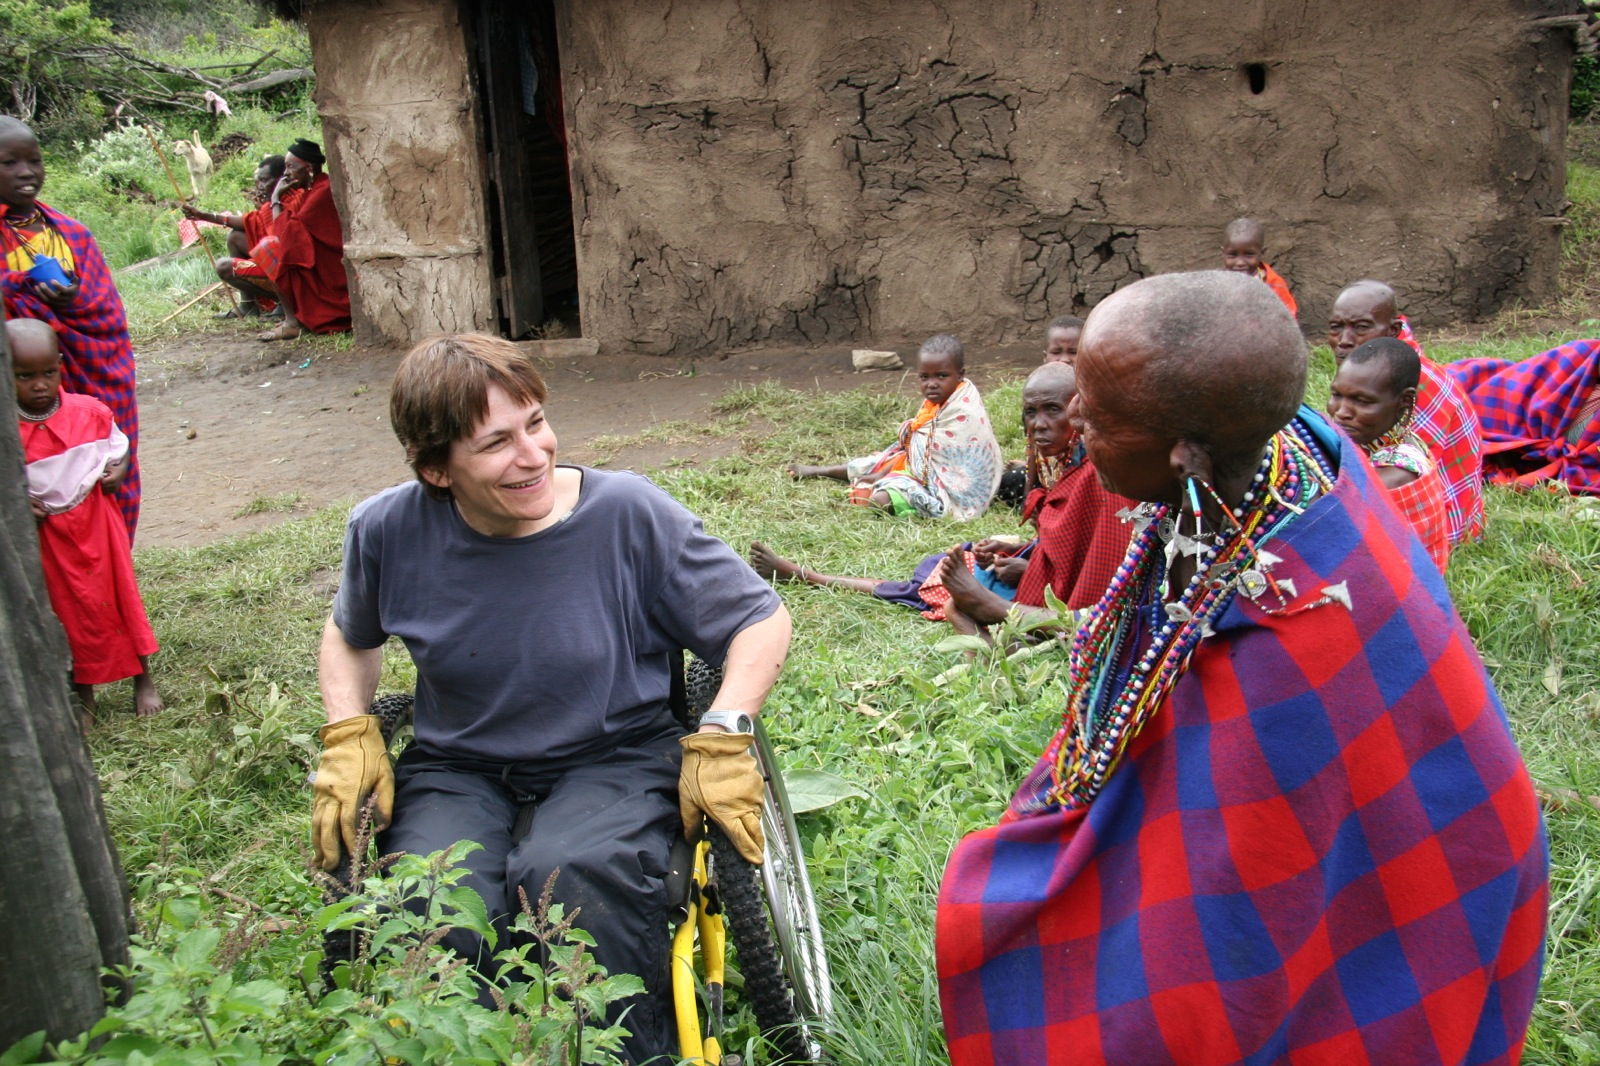 A participant interacts with a Maasai Koko, or grandmother, who is wrapped in a traditional red and blue plaid cloth.